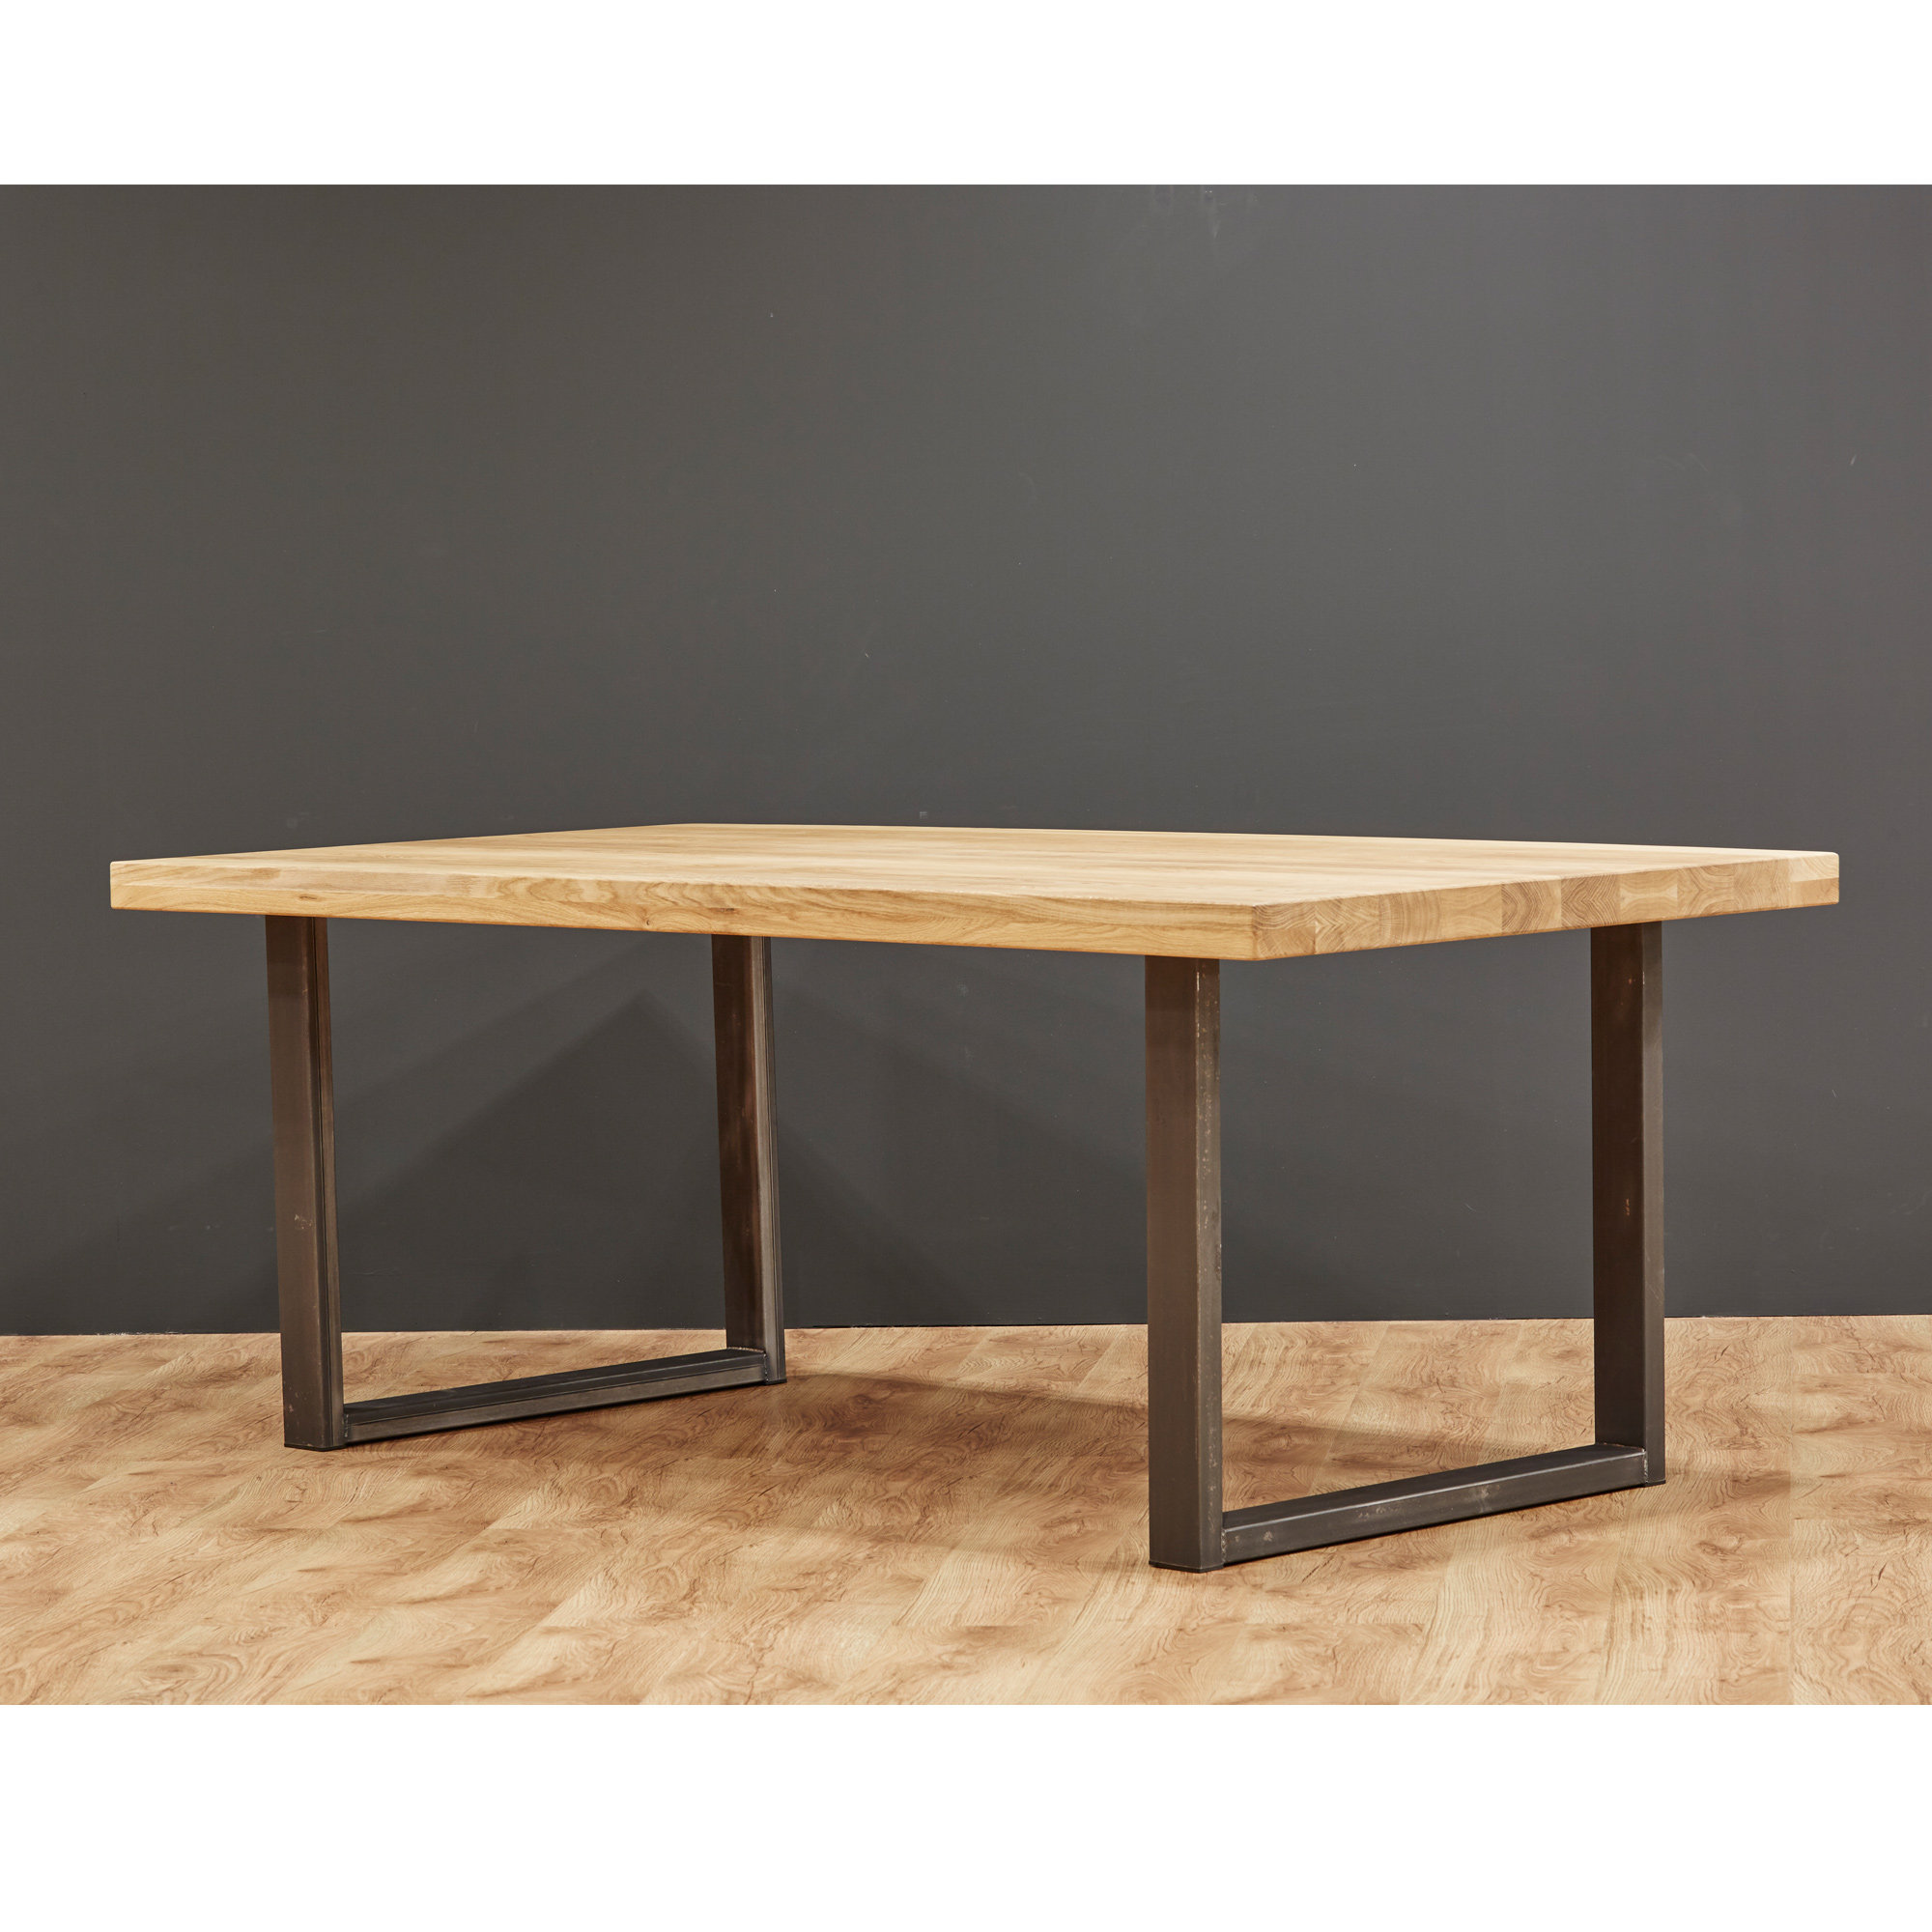 Stone Dining Table ~ Stone dining table no furniture cobham nr london